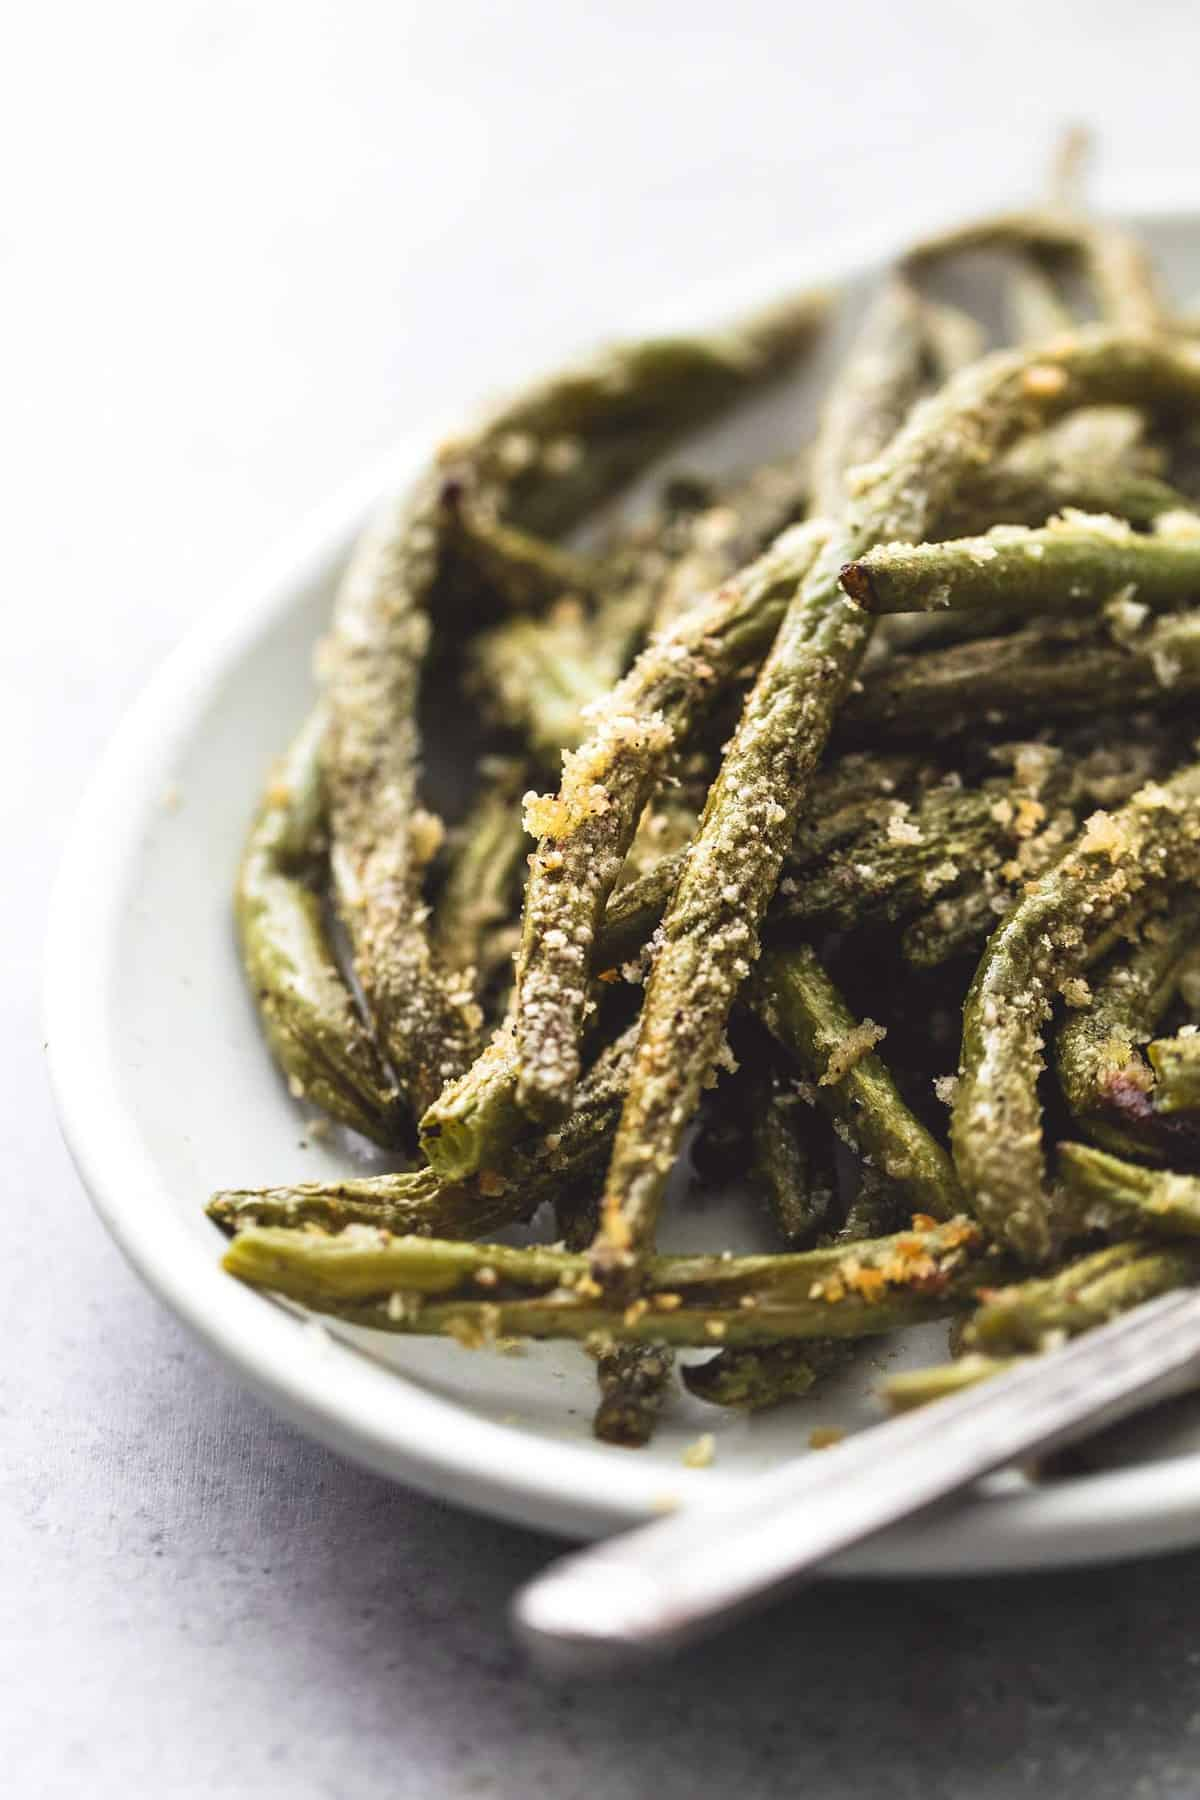 Easy, oven roasted Crispy Parmesan Green beans with savory garlic and herb seasonings and a crispy parmesan coating that is irresistible. | lecremedelacrumb.com